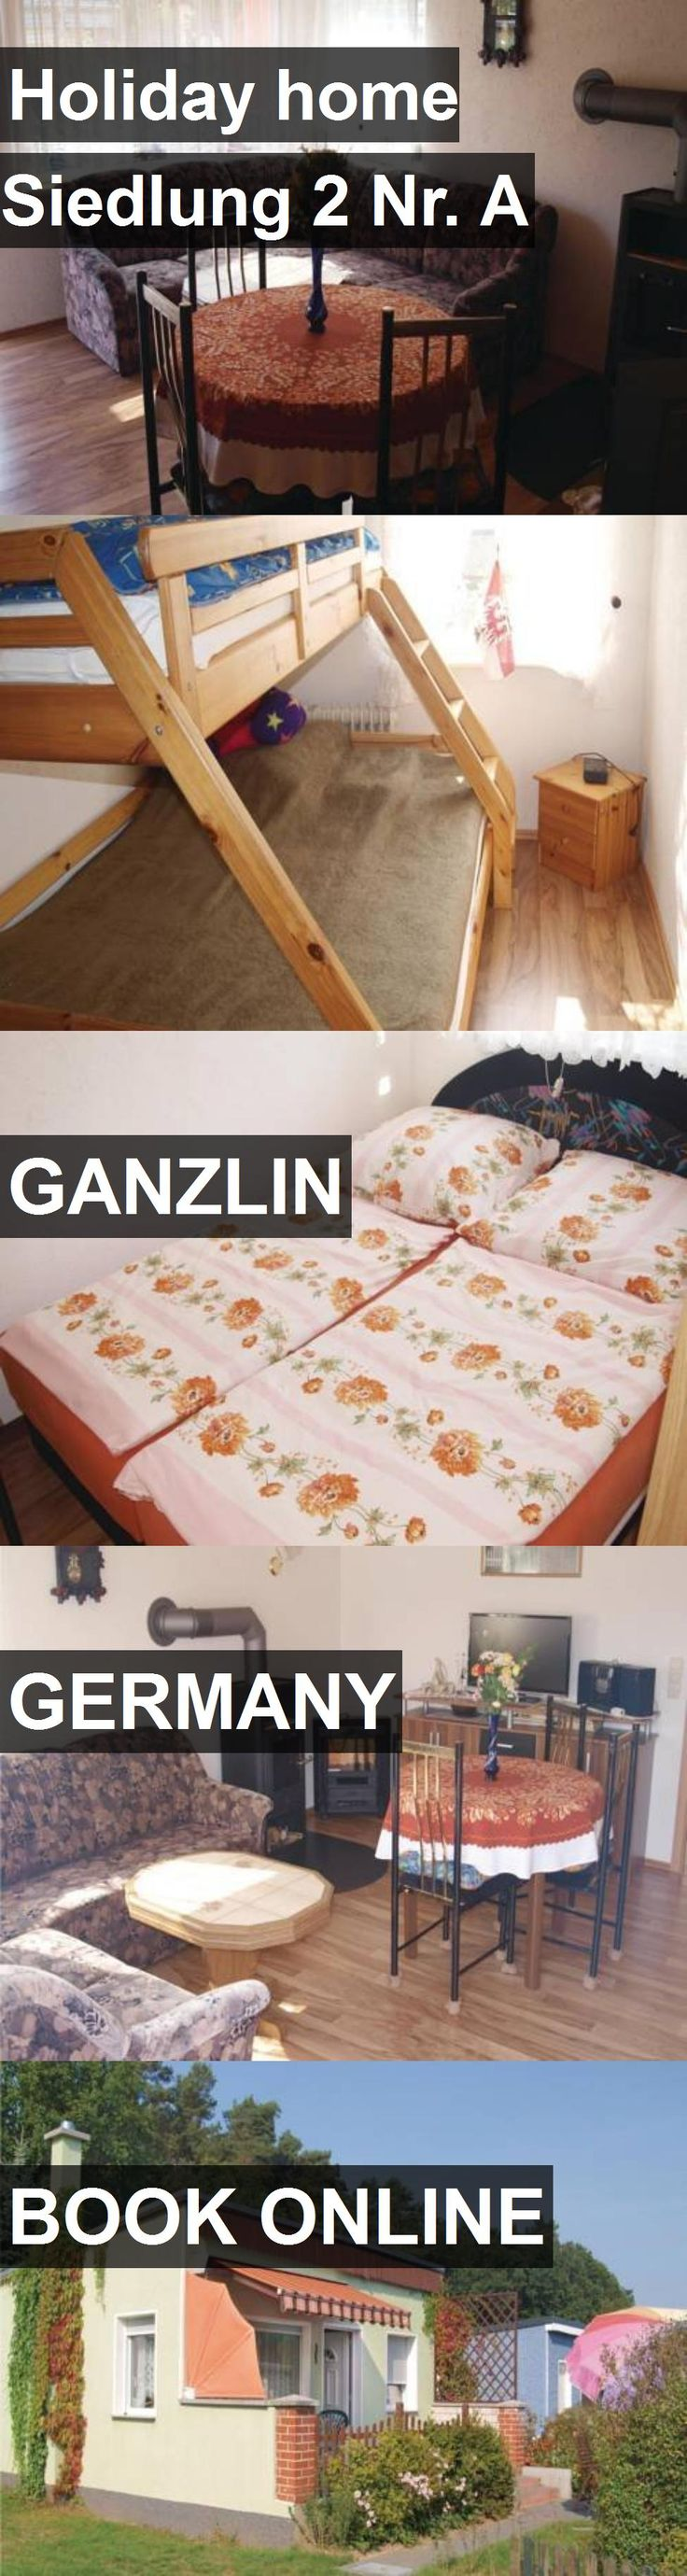 Hotel Holiday home Siedlung 2 Nr. A in Ganzlin, Germany. For more information, photos, reviews and best prices please follow the link. #Germany #Ganzlin #travel #vacation #hotel